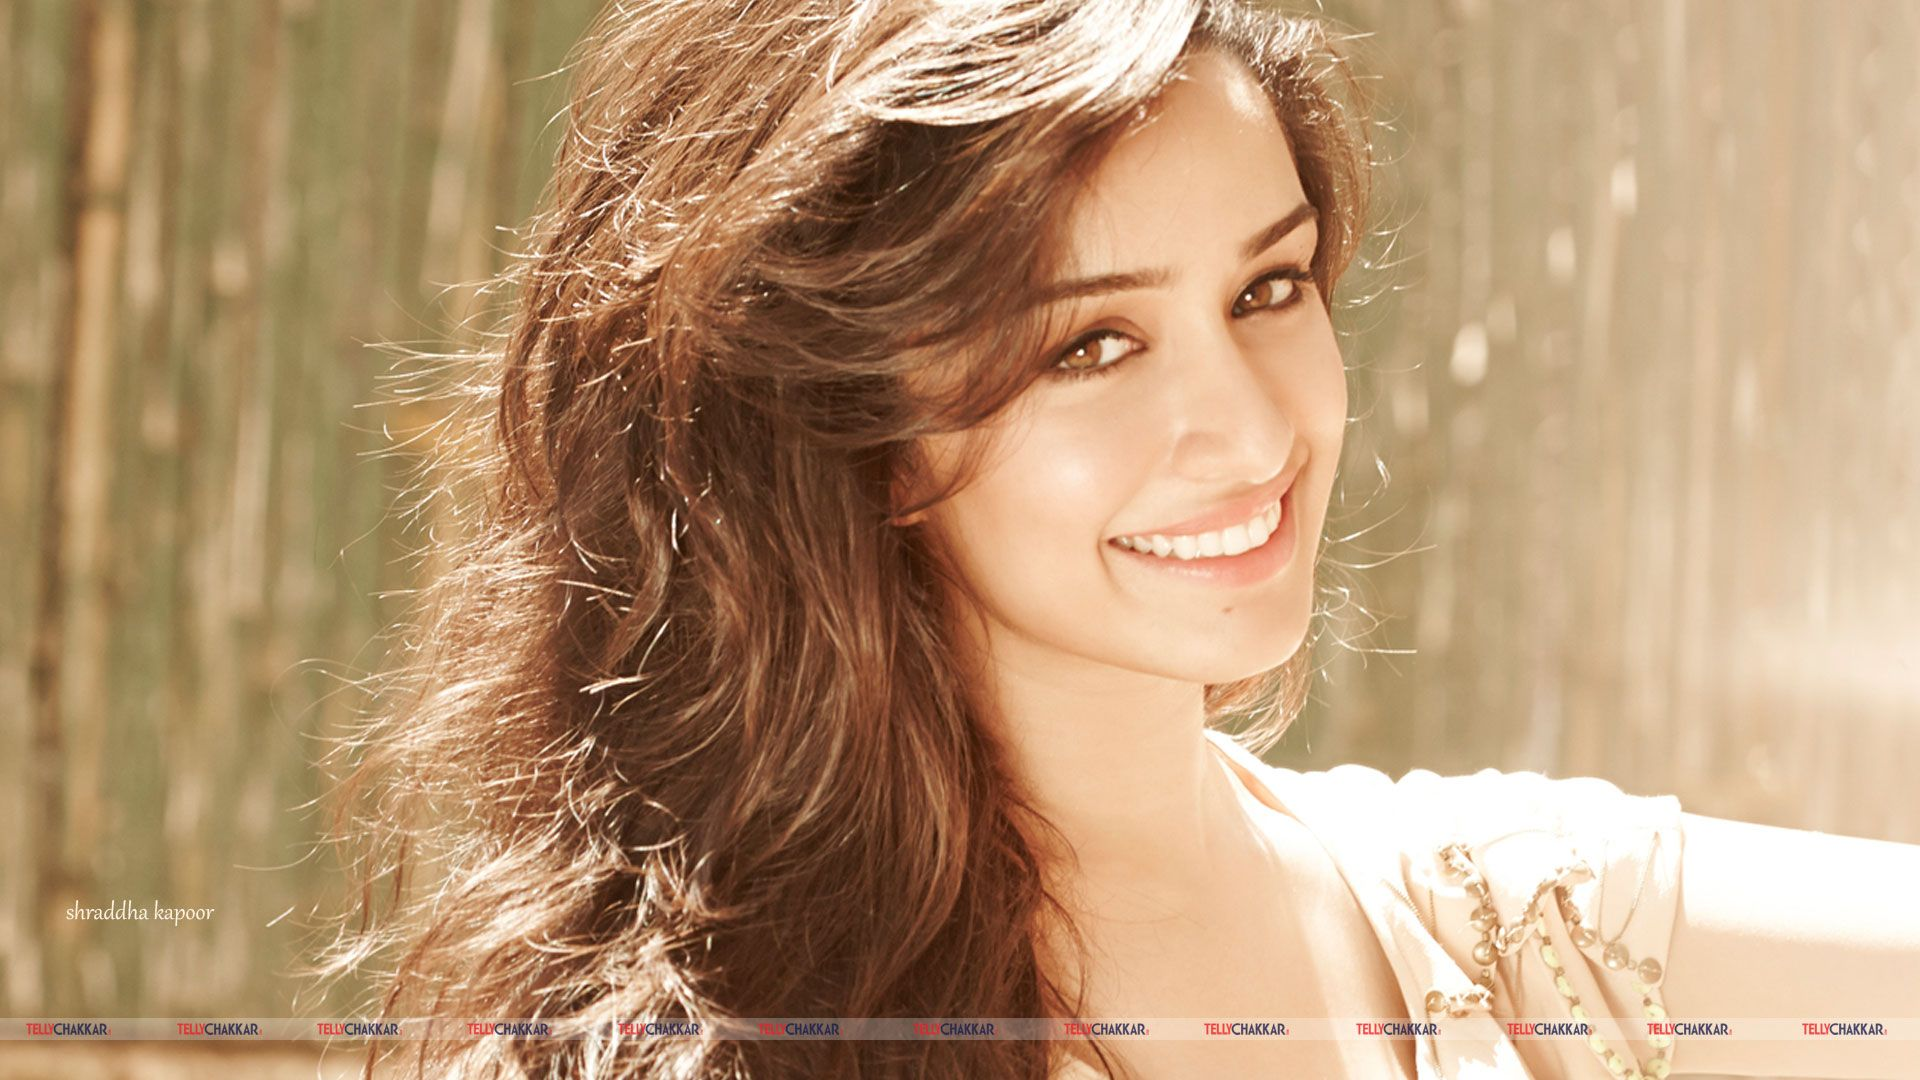 shraddha kapoor wallpaper 600×600 shradha kapoor wallpaper (65